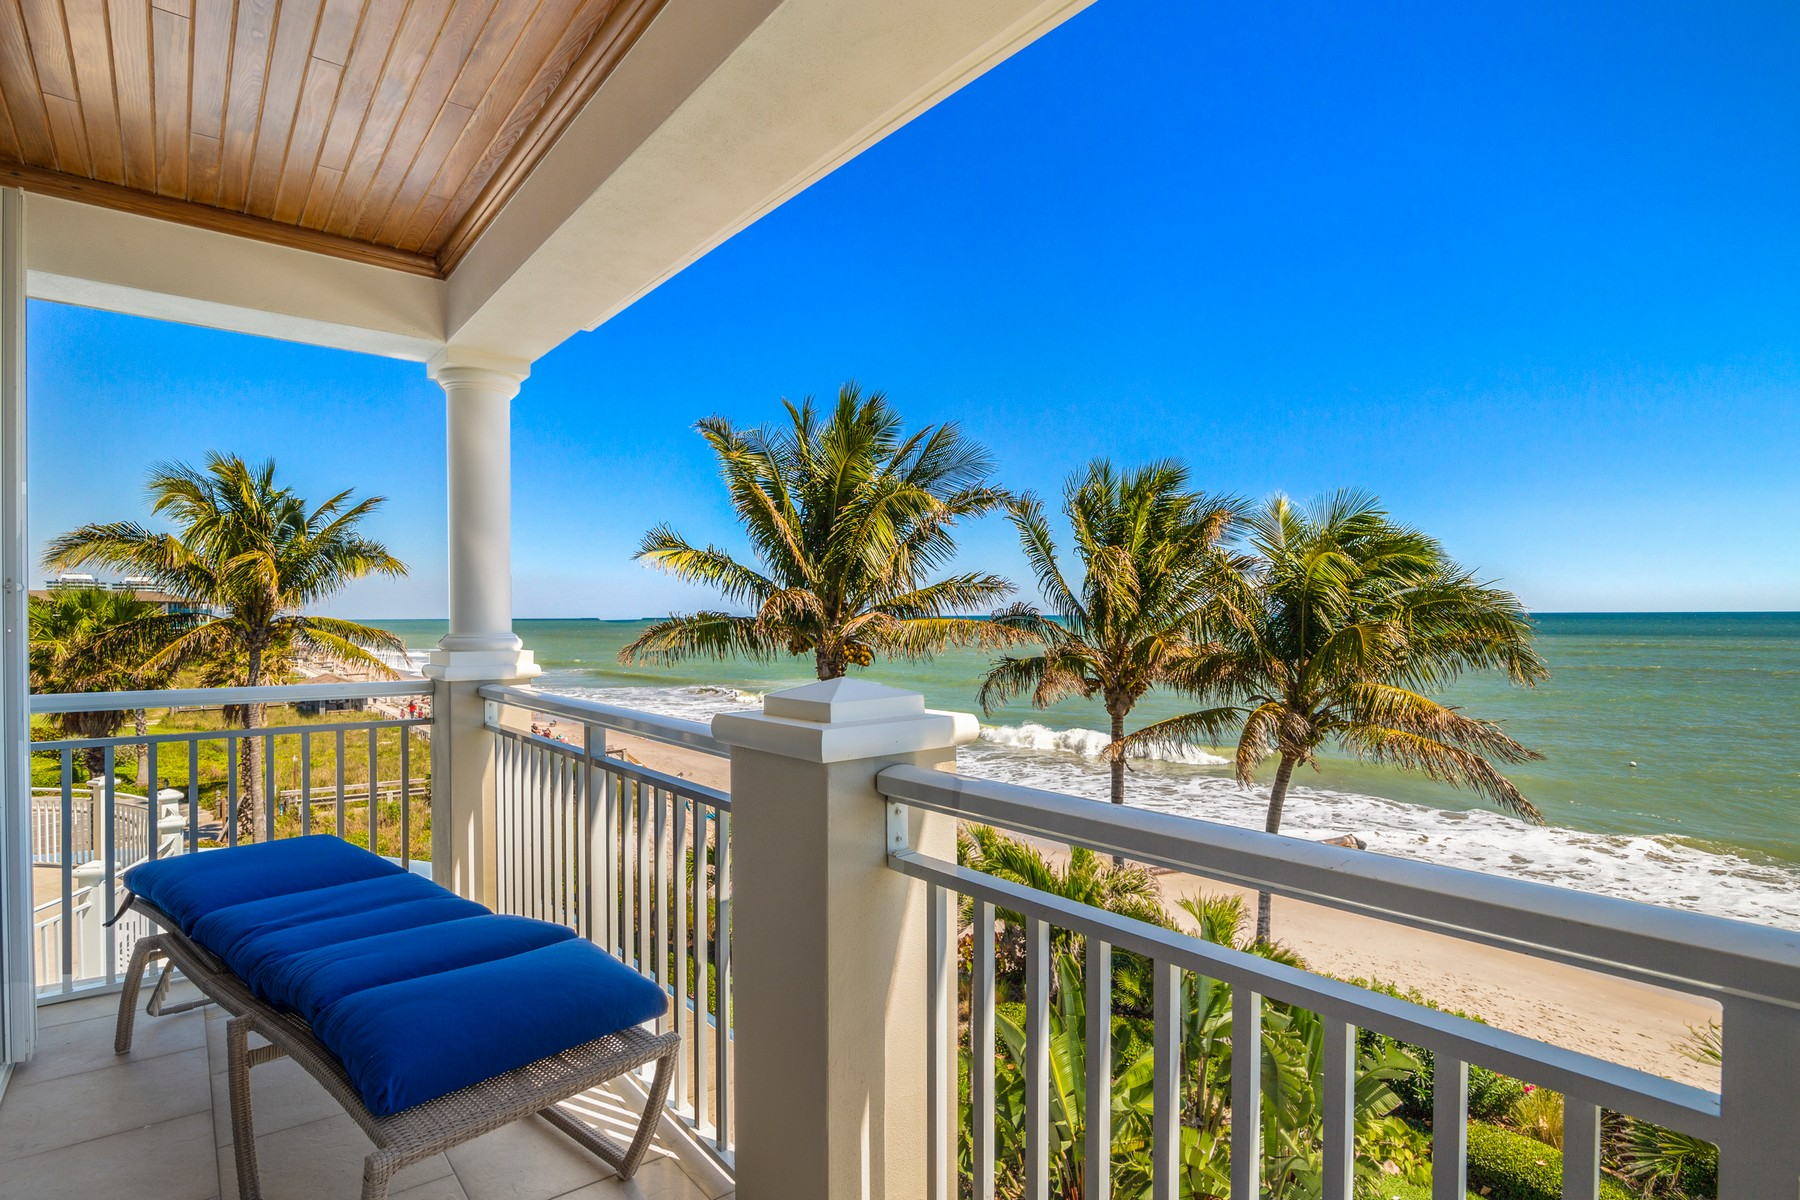 Property для того Продажа на Elegant Oceanfront Townhome Right in Town 1010 Easter Lily Ln #105 Vero Beach, Флорида 32963 Соединенные Штаты